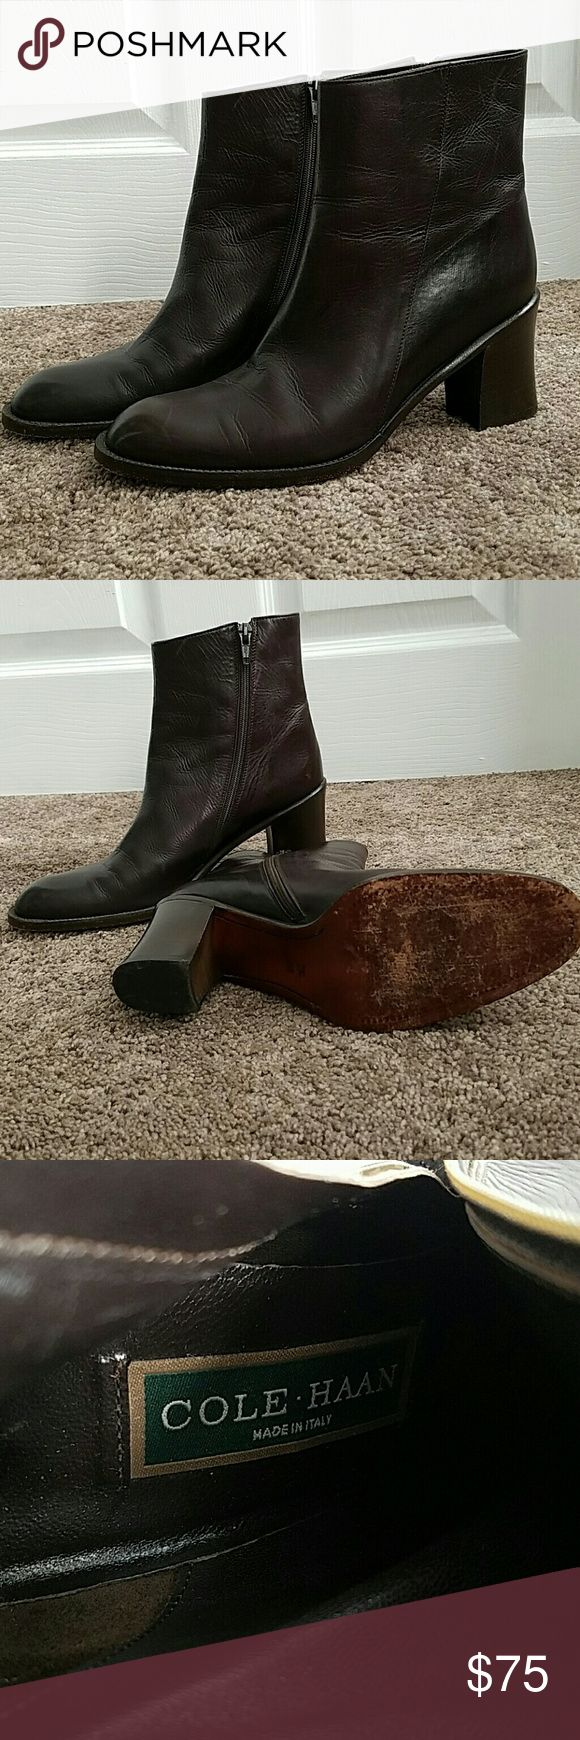 """COLE HAAN Ankle Boots MADE IN ITALY These gorgeous ankle boots by Coke Haan are made in Italy and come in 7 1/2 AA. They are in EUC with minor wear to the soles. The heels measure 2 3/4"""" Cole Haan Shoes Ankle Boots & Booties"""